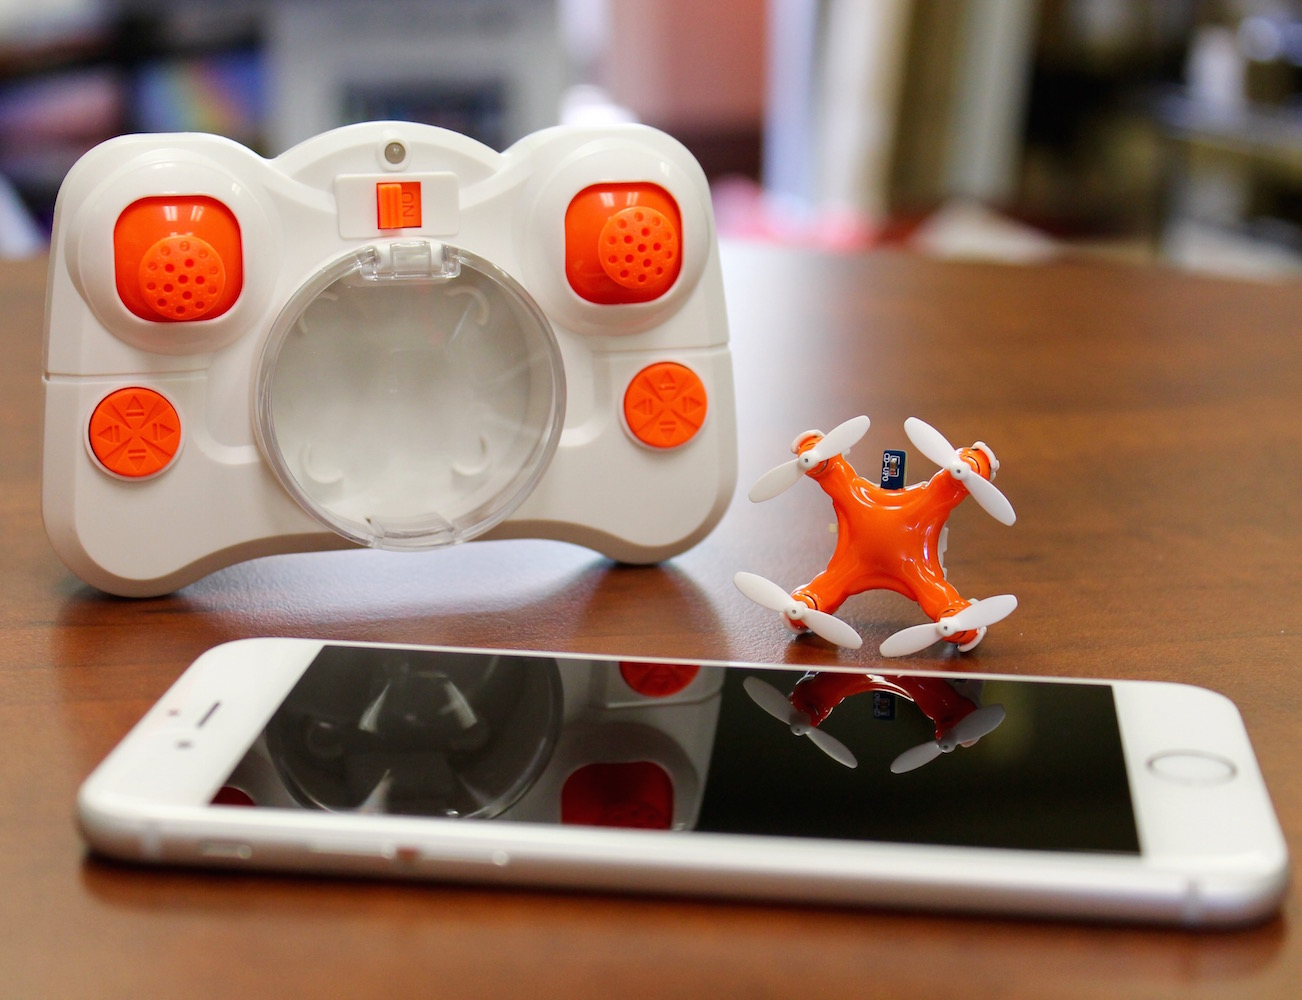 AERIUS: The New World's Smallest Quadcopter